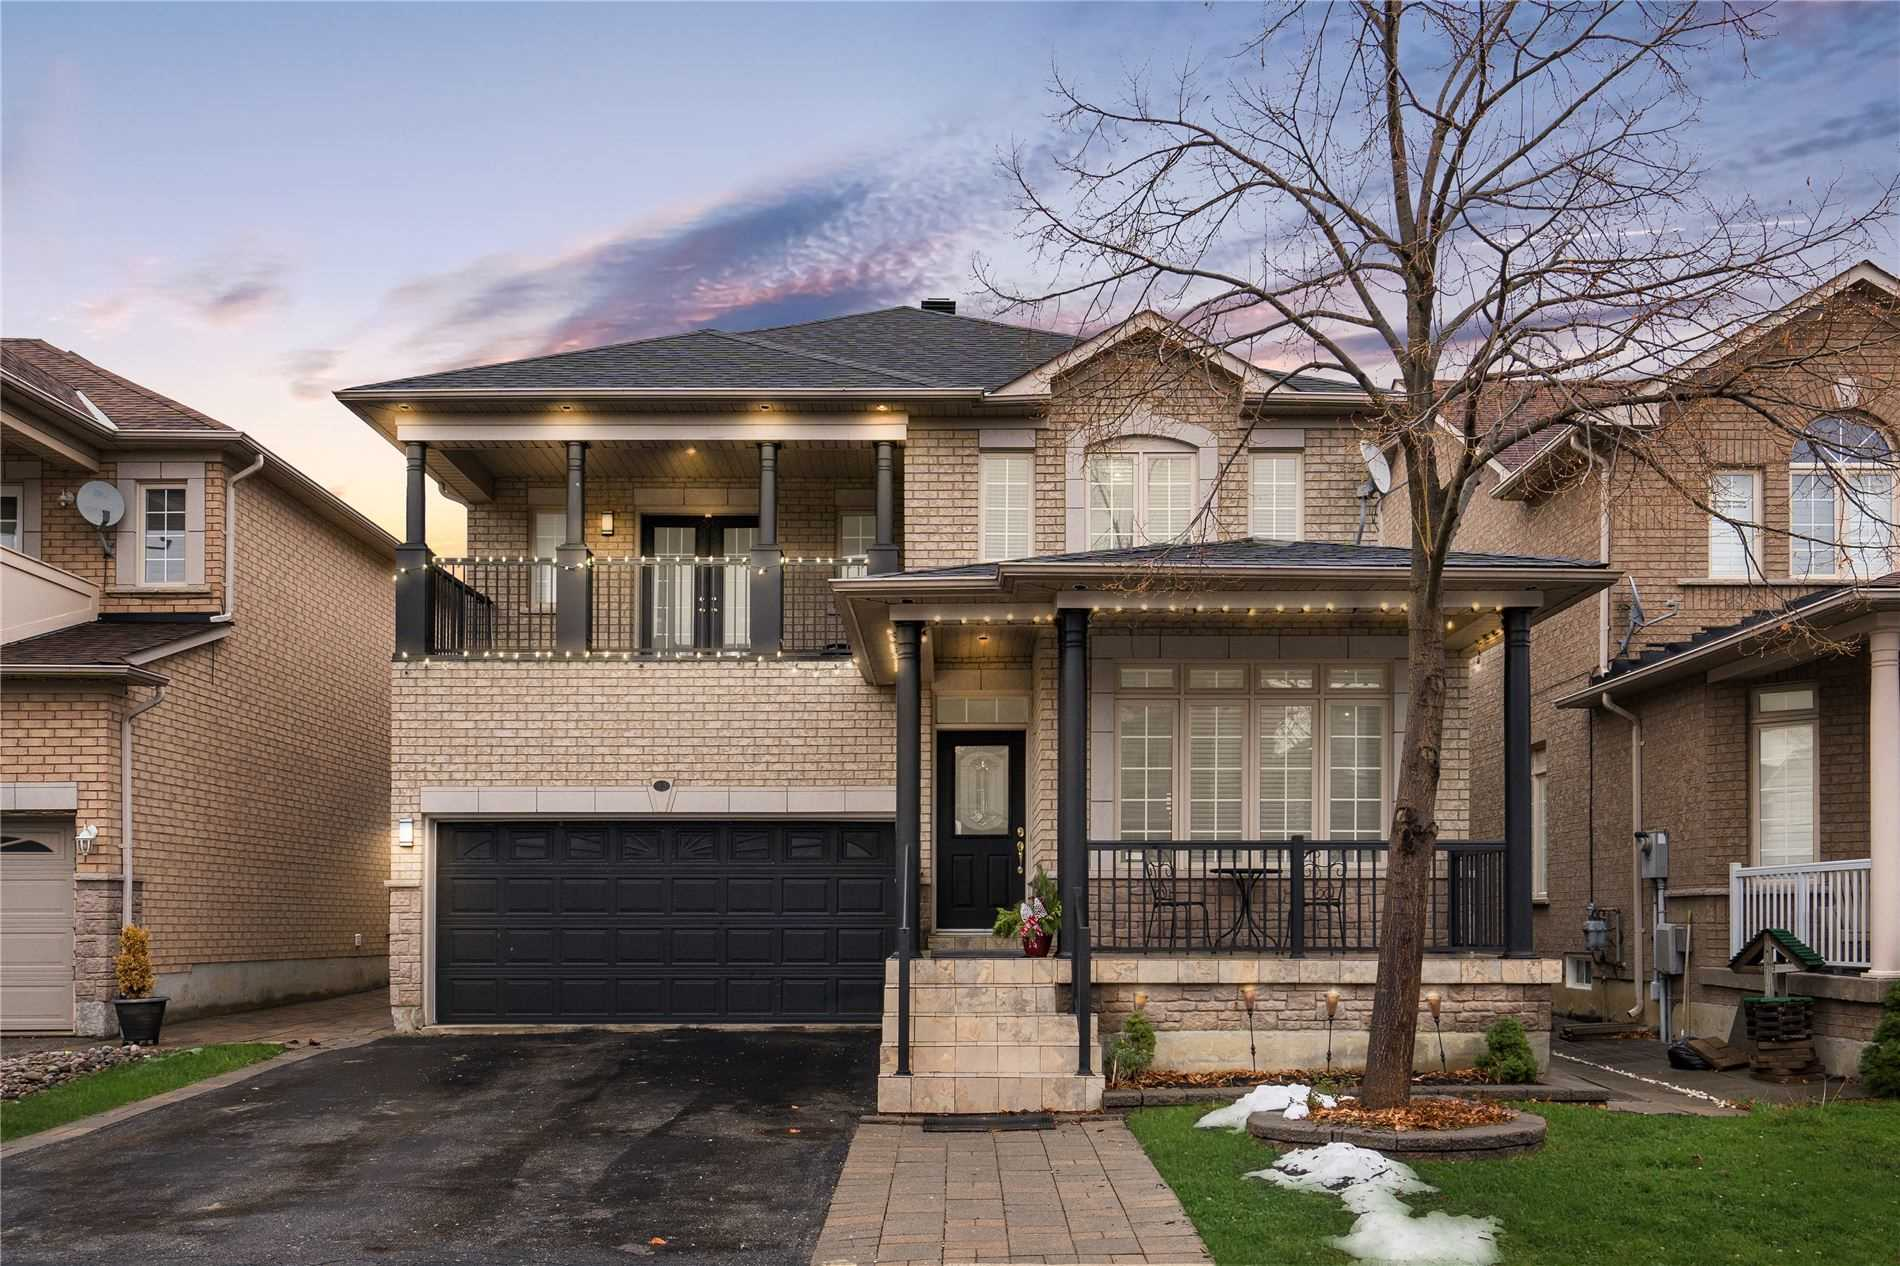 For Sale: 43 Dybal Street, Vaughan, ON | 4 Bed, 4 Bath House for $1149999.00. See 38 photos!